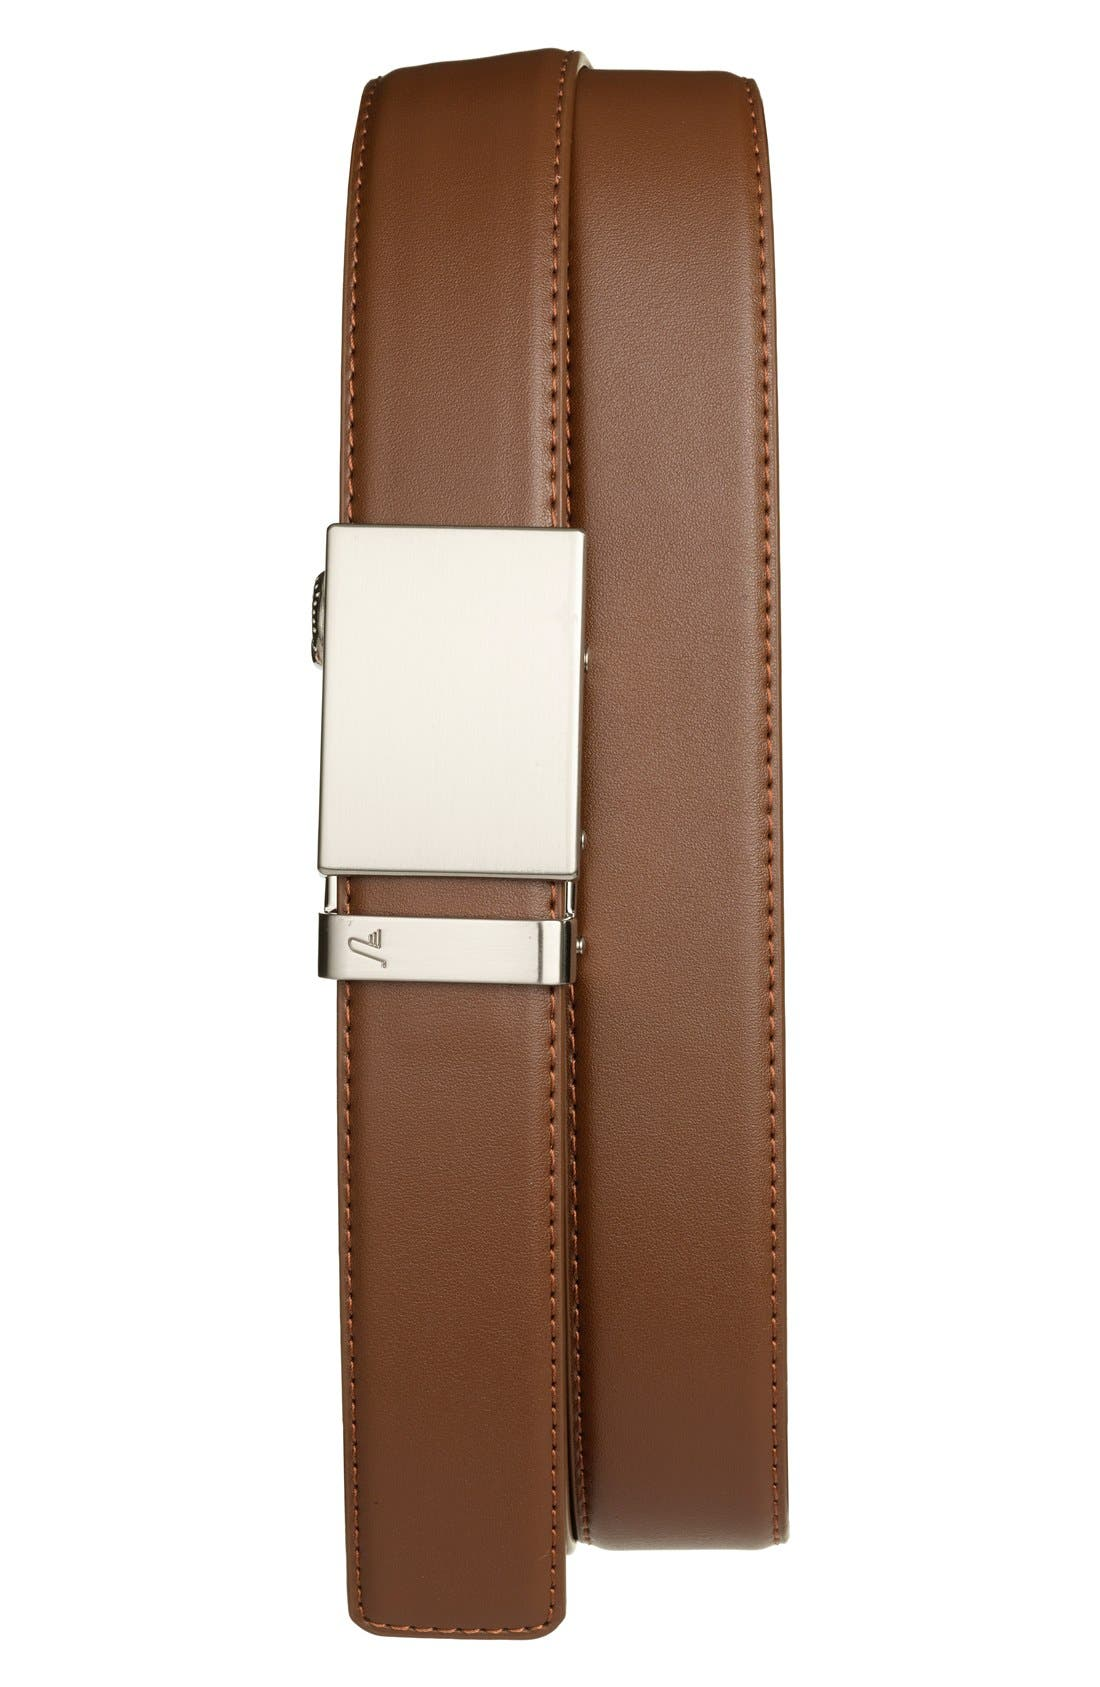 Main Image - Mission Belt 'Steel' Leather Belt